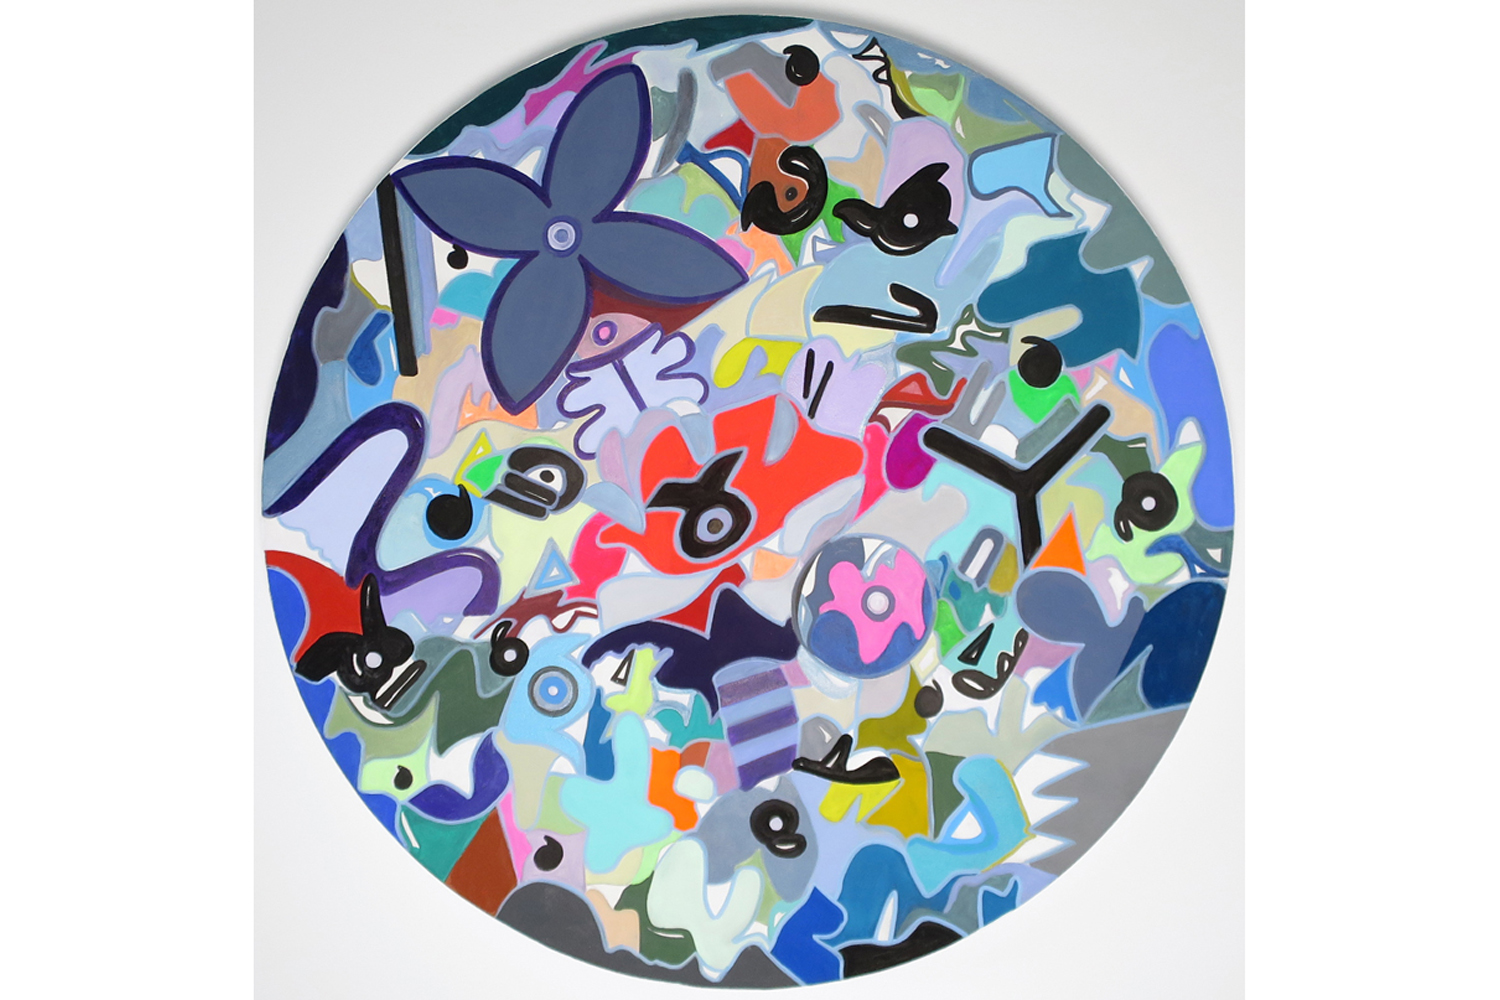 David Gaither  No Way Out / Better Double Up , 2017 Acrylic, gouache, composite paints and solid paint markers on panel 24 inch diameter (61 cm diameter)